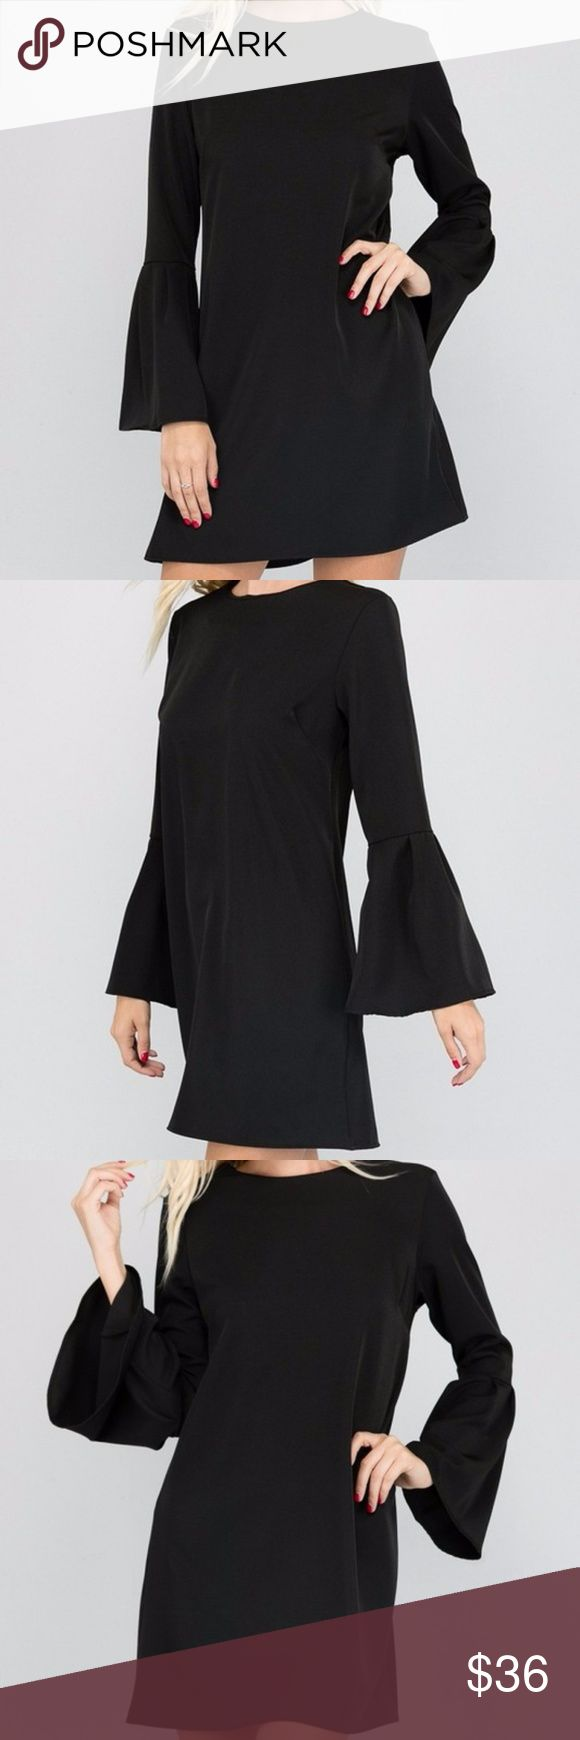 Black Long Bell Sleeve Mini Shift Dress Tunic Top Black long Bell Sleeve mini Dress or Tunic Top. Hidden zipper back closure. Made of soft stretchy crepe fabric. Polyester spandex blend. Made in USA. Brand New factory direct.  Size S 2/4: Bust 33-34 Waist 25-26 Hips 35-36 Size M 6/8: Bust 35-36 Waist 27-28 Hips 37-38 Size L 10/12: Bust 37-38 Waist 29-30 Hips 39-40  Size chart provided as a guidance. Dresses Mini